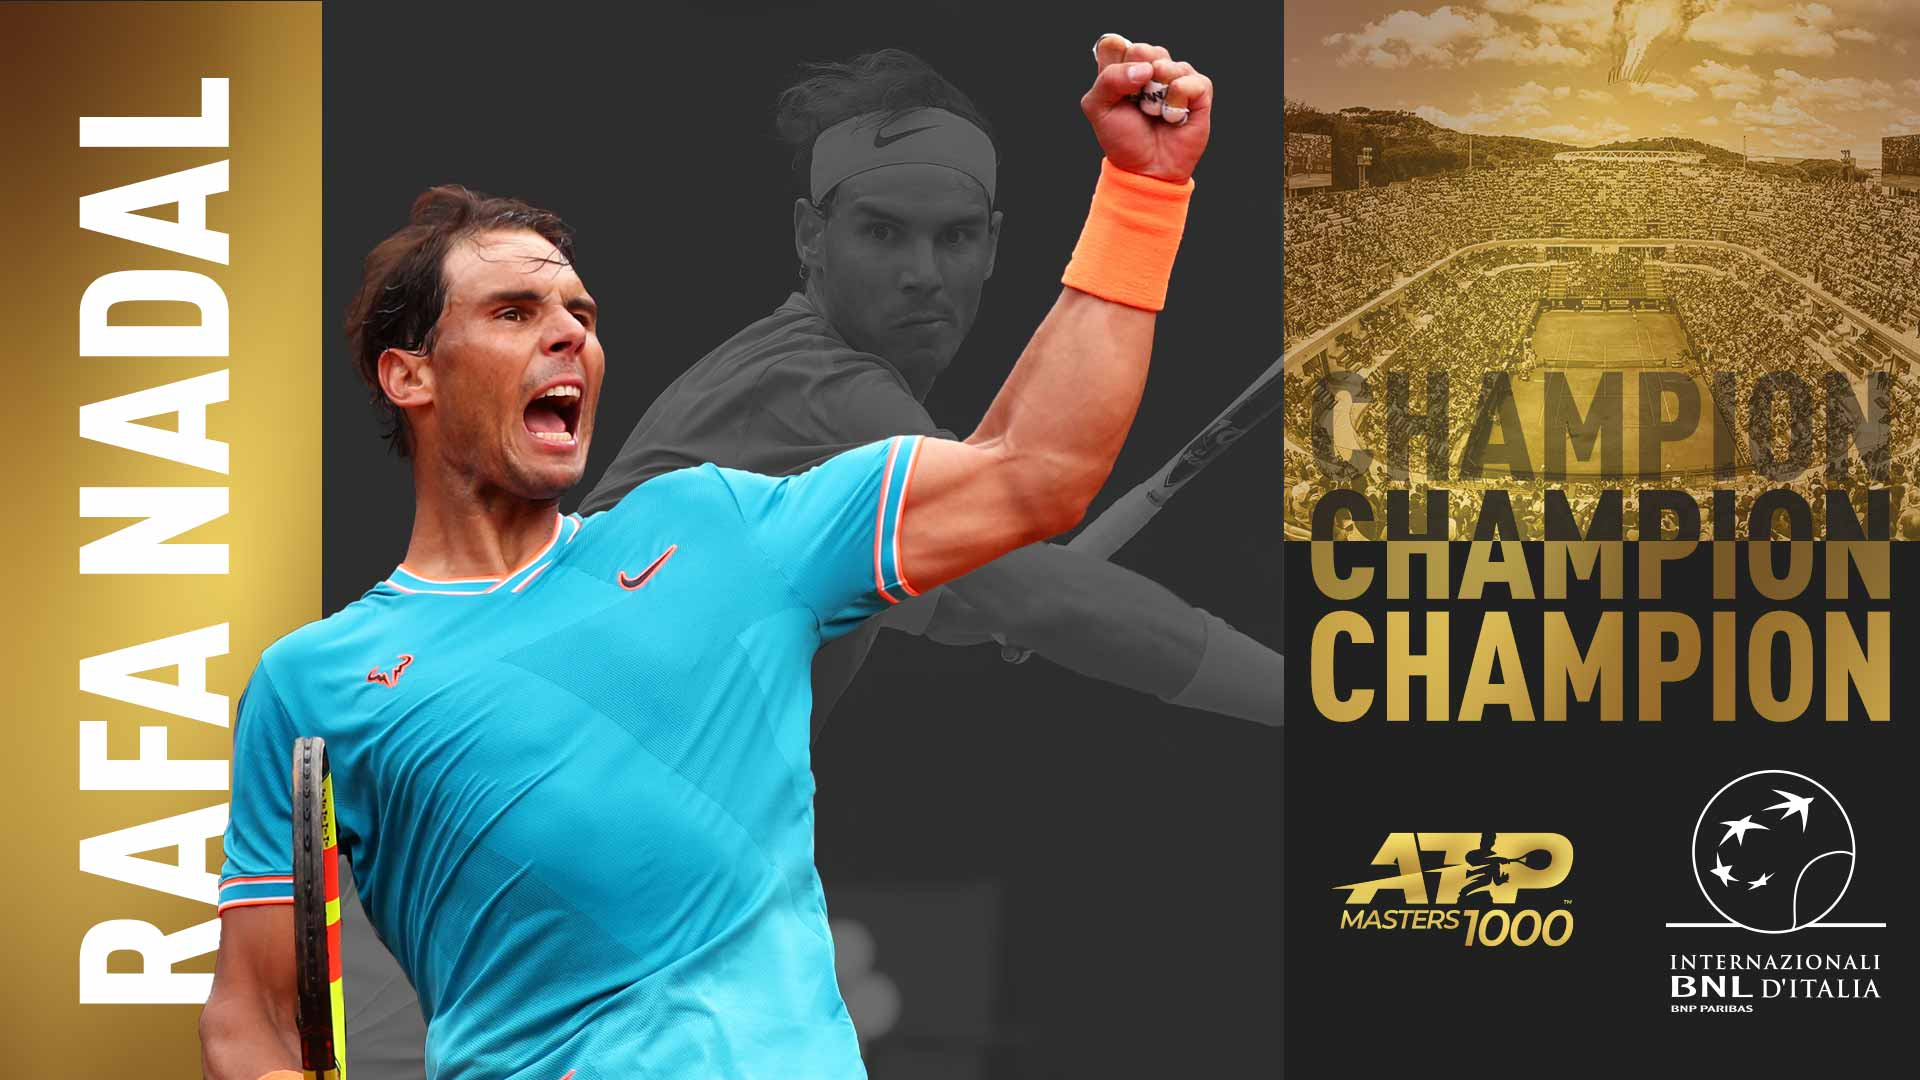 Rafael Nadal wins his ninth Rome title on Sunday